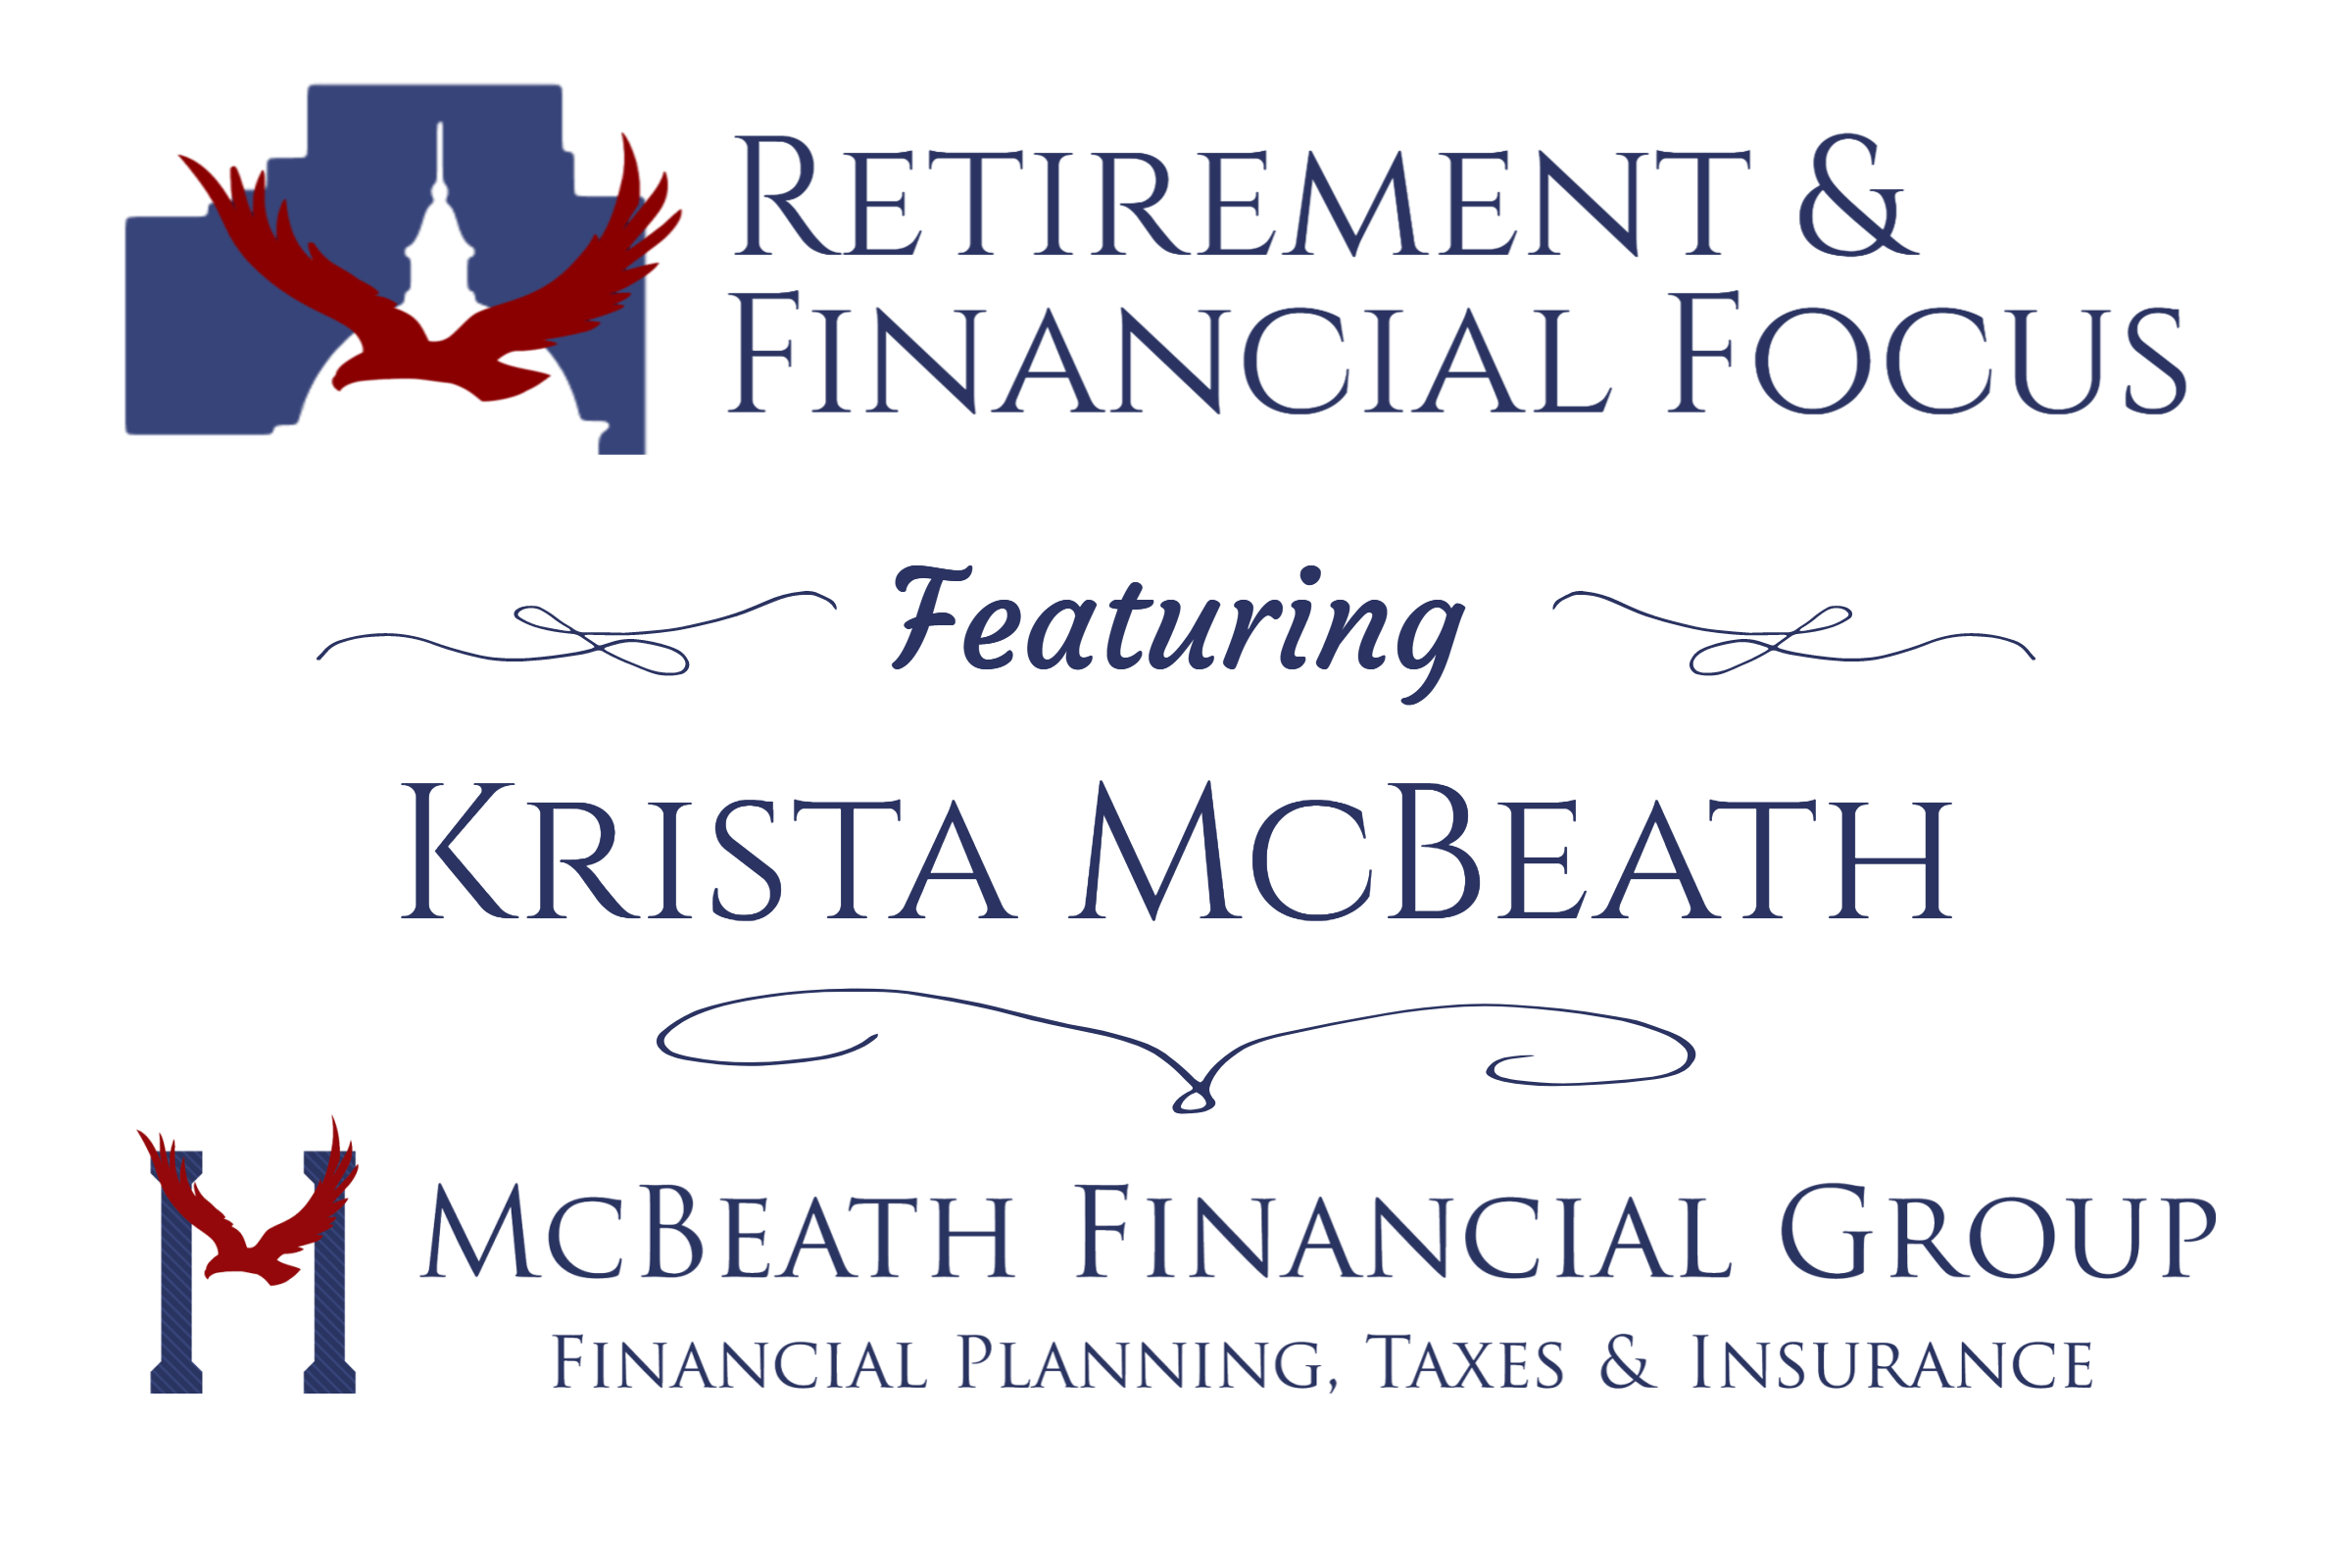 McBeath Financial Focus Video Series Overhauled